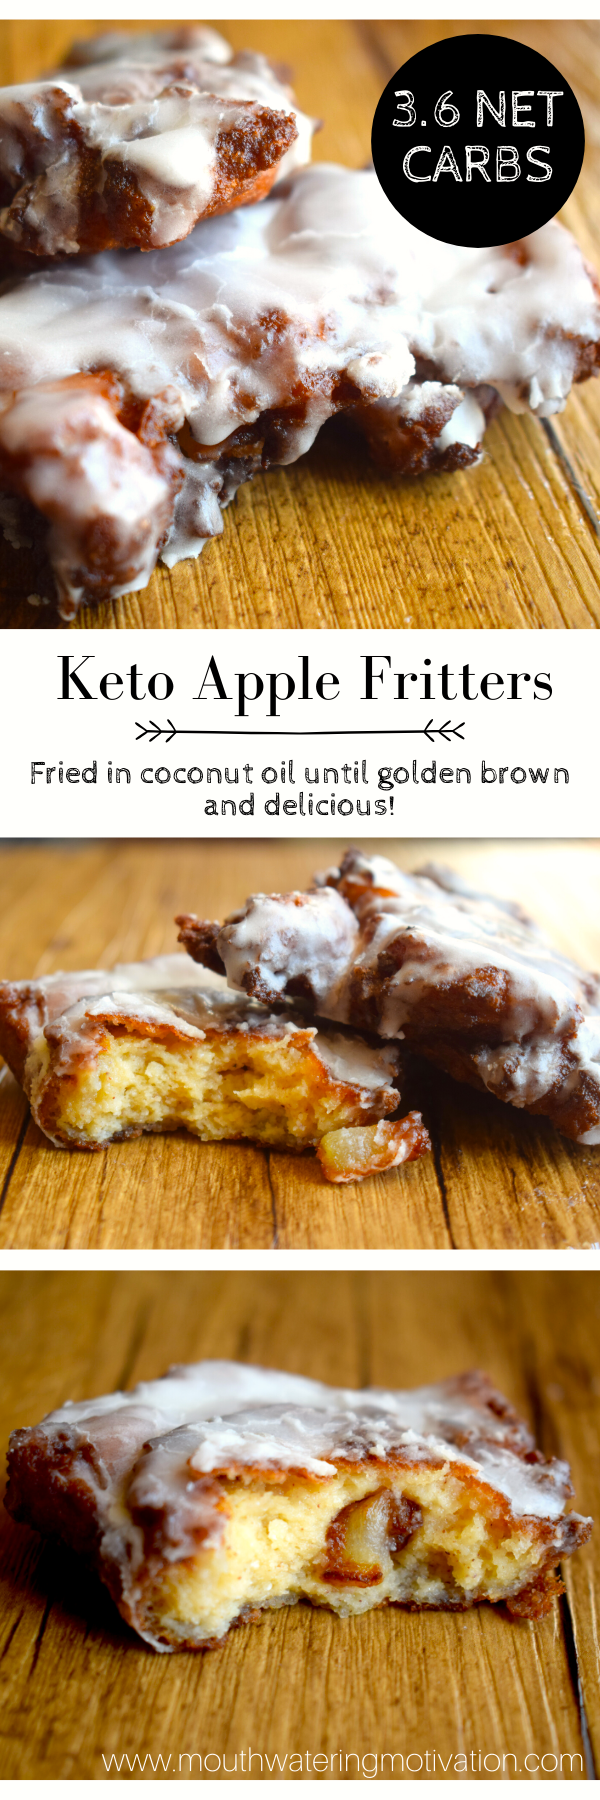 Keto Apple Fritters-2